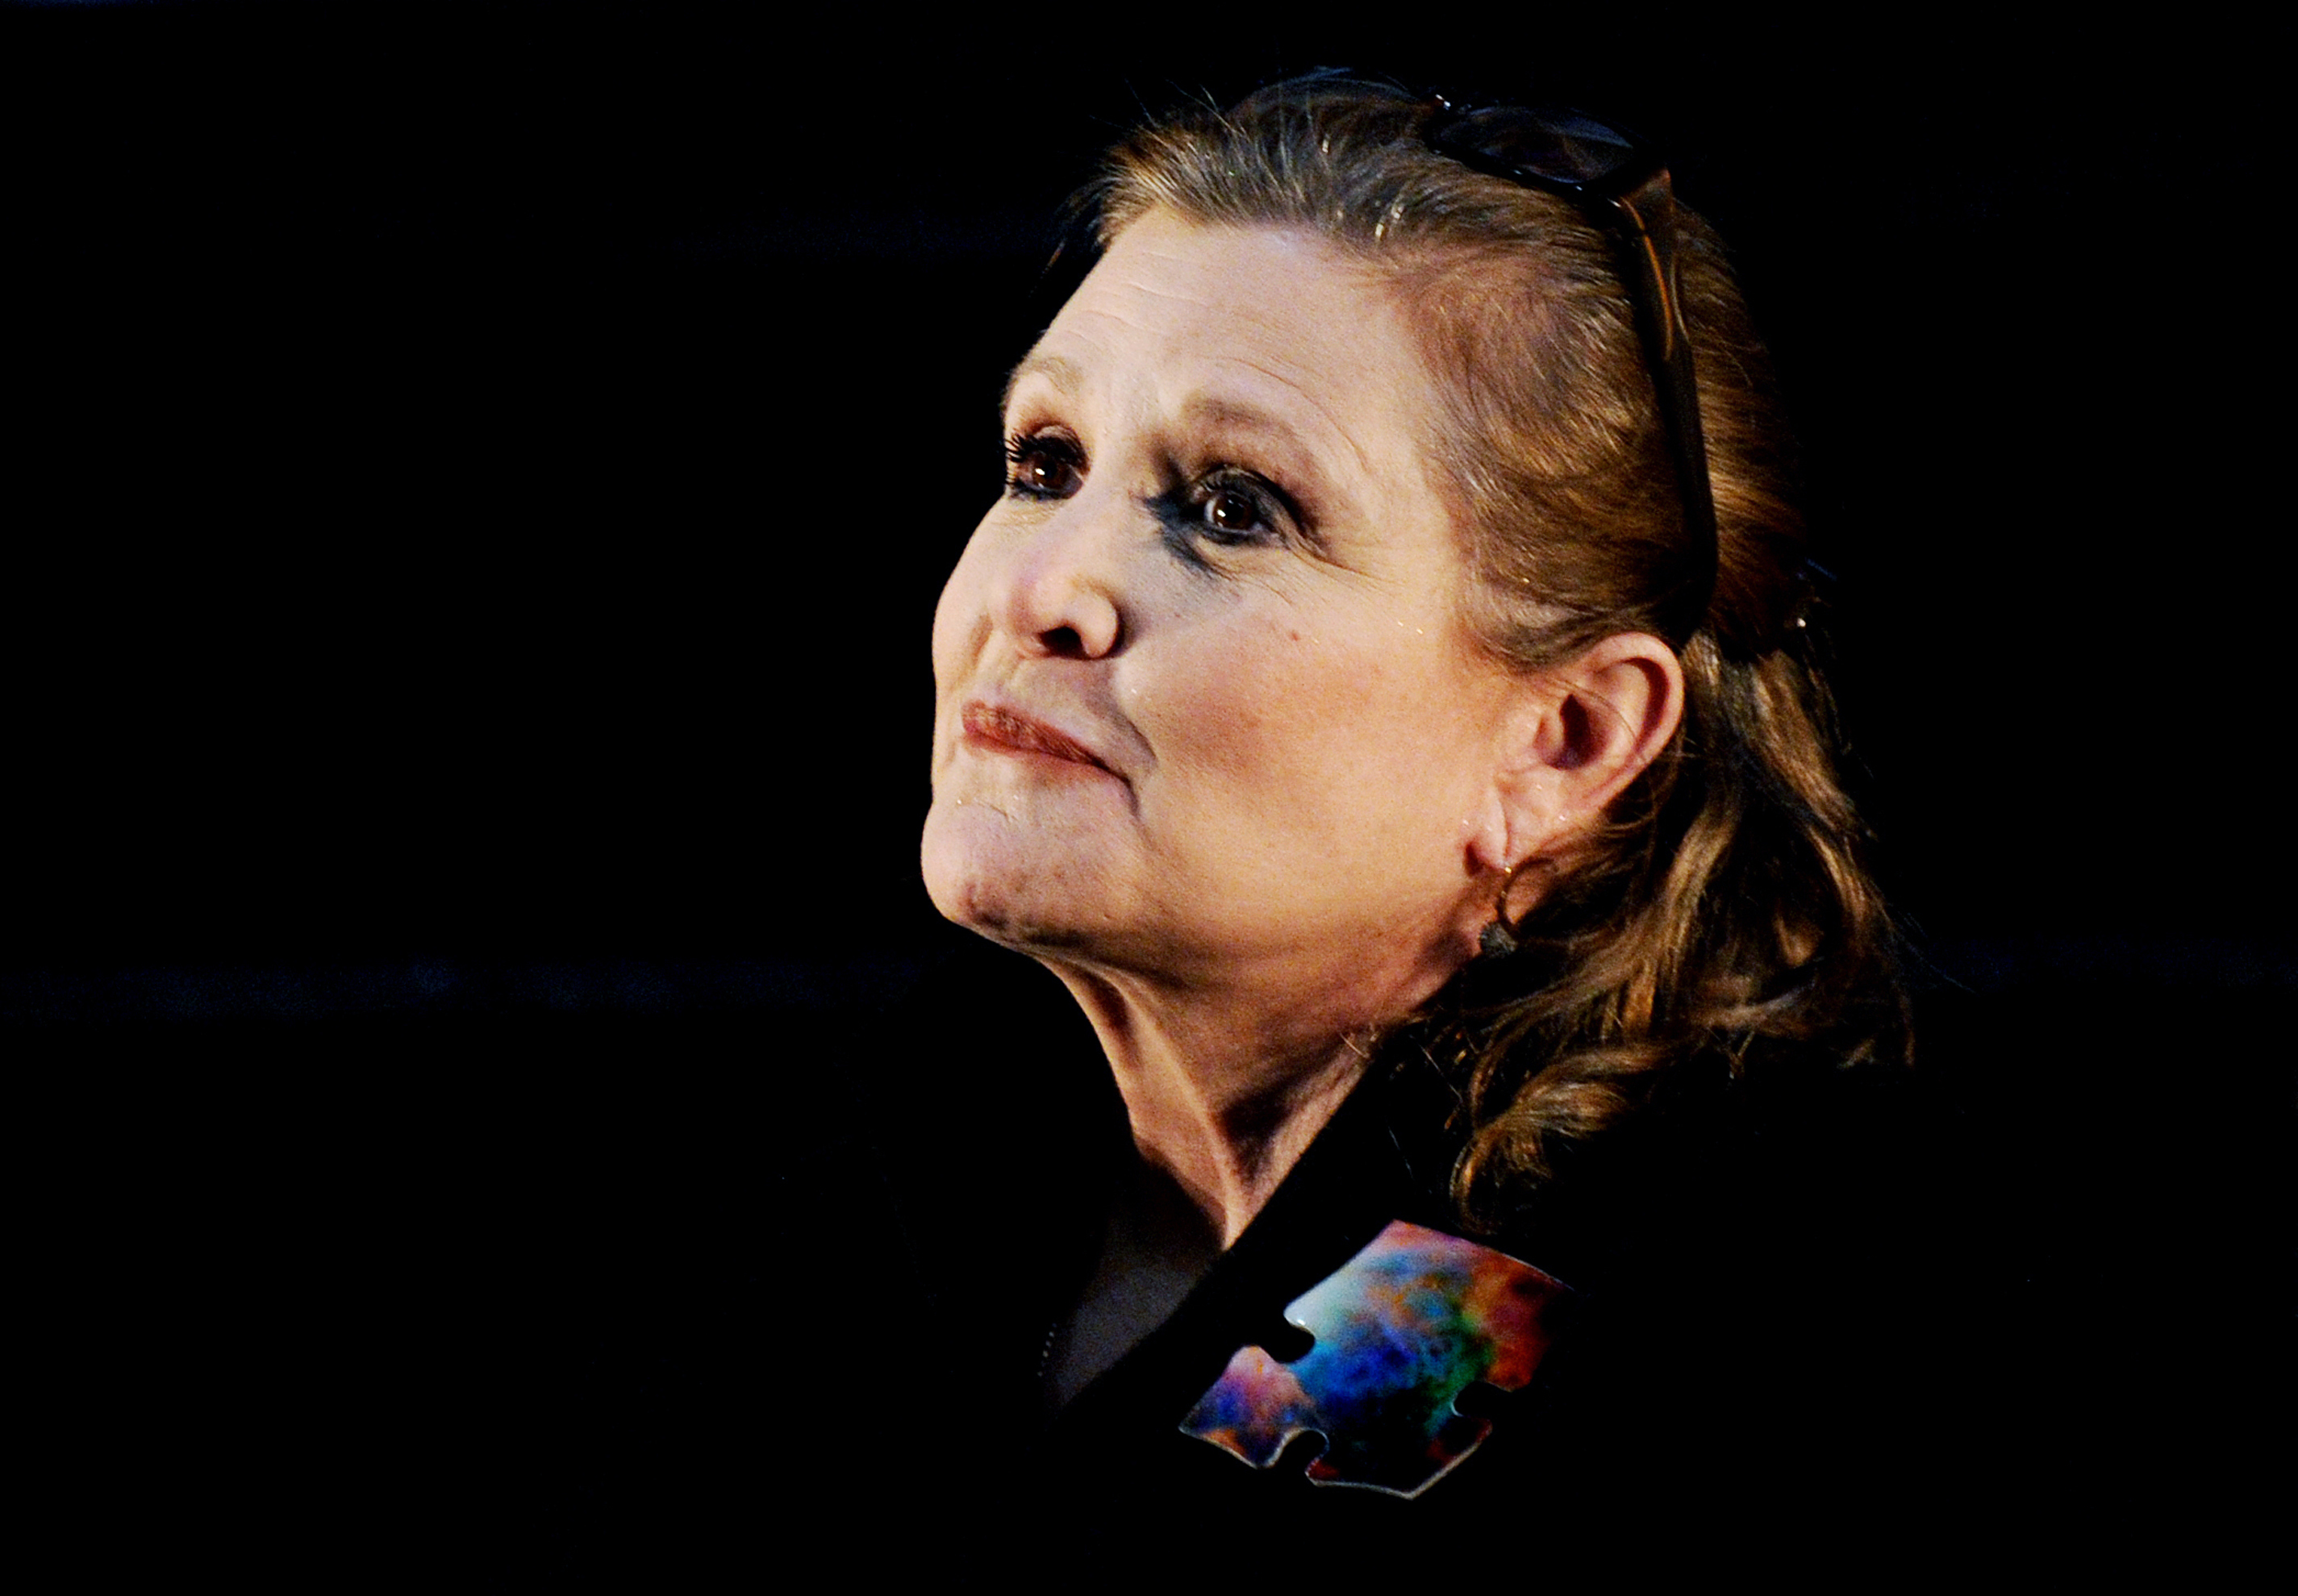 Carrie Fisher a murit